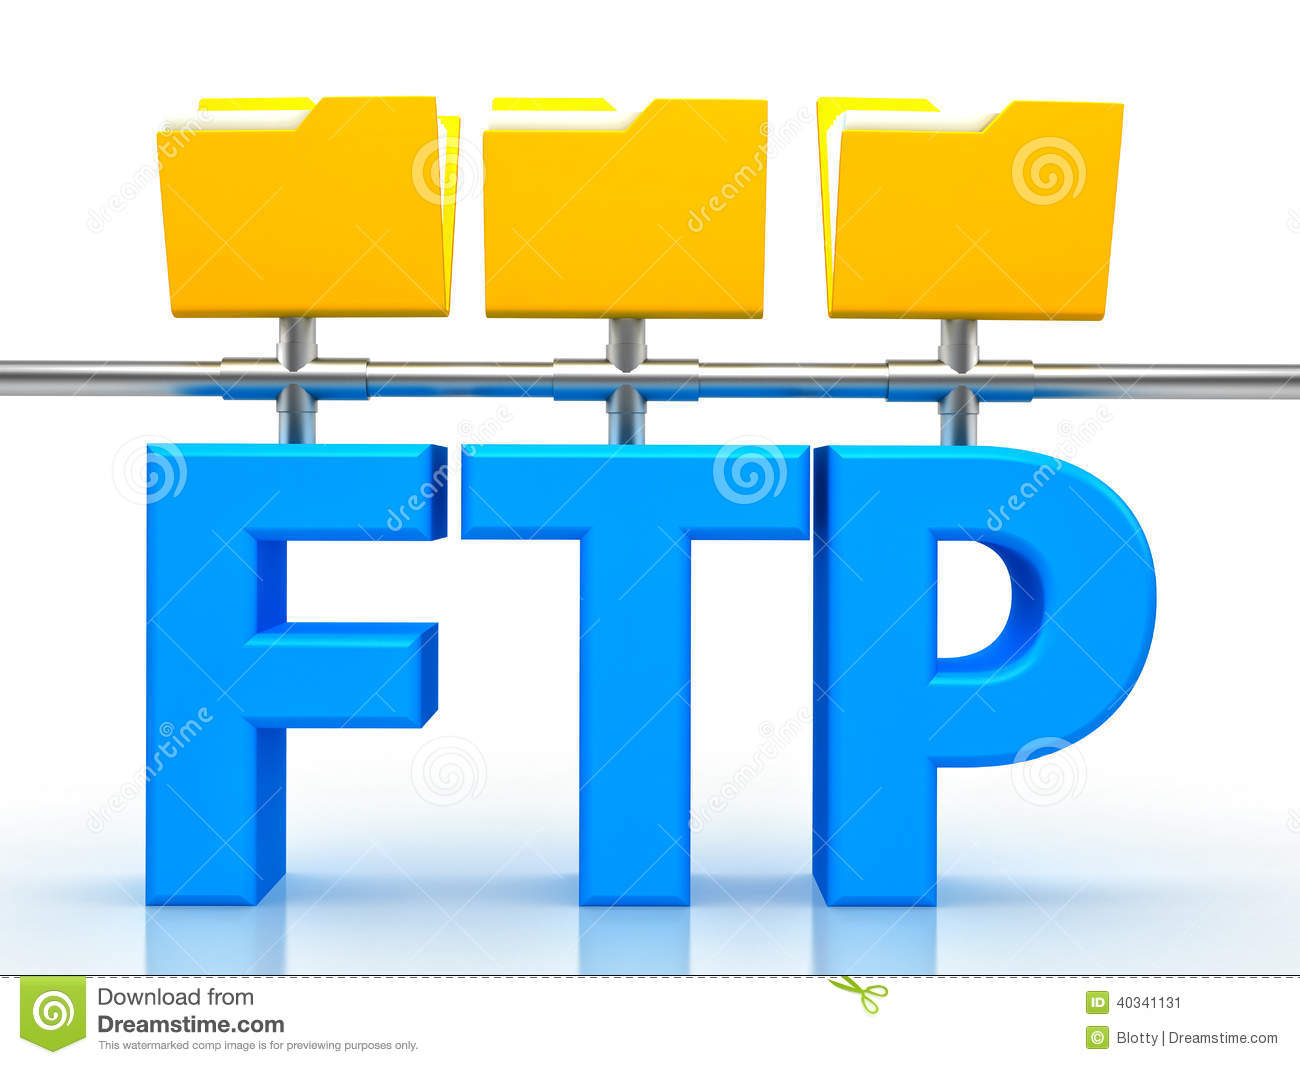 ftp file transfer protocol Sftp – ssh secure file transfer protocol sftp (ssh file transfer protocol) is a secure file transfer protocol it runs over the ssh protocolit supports the full security and authentication functionality of ssh.